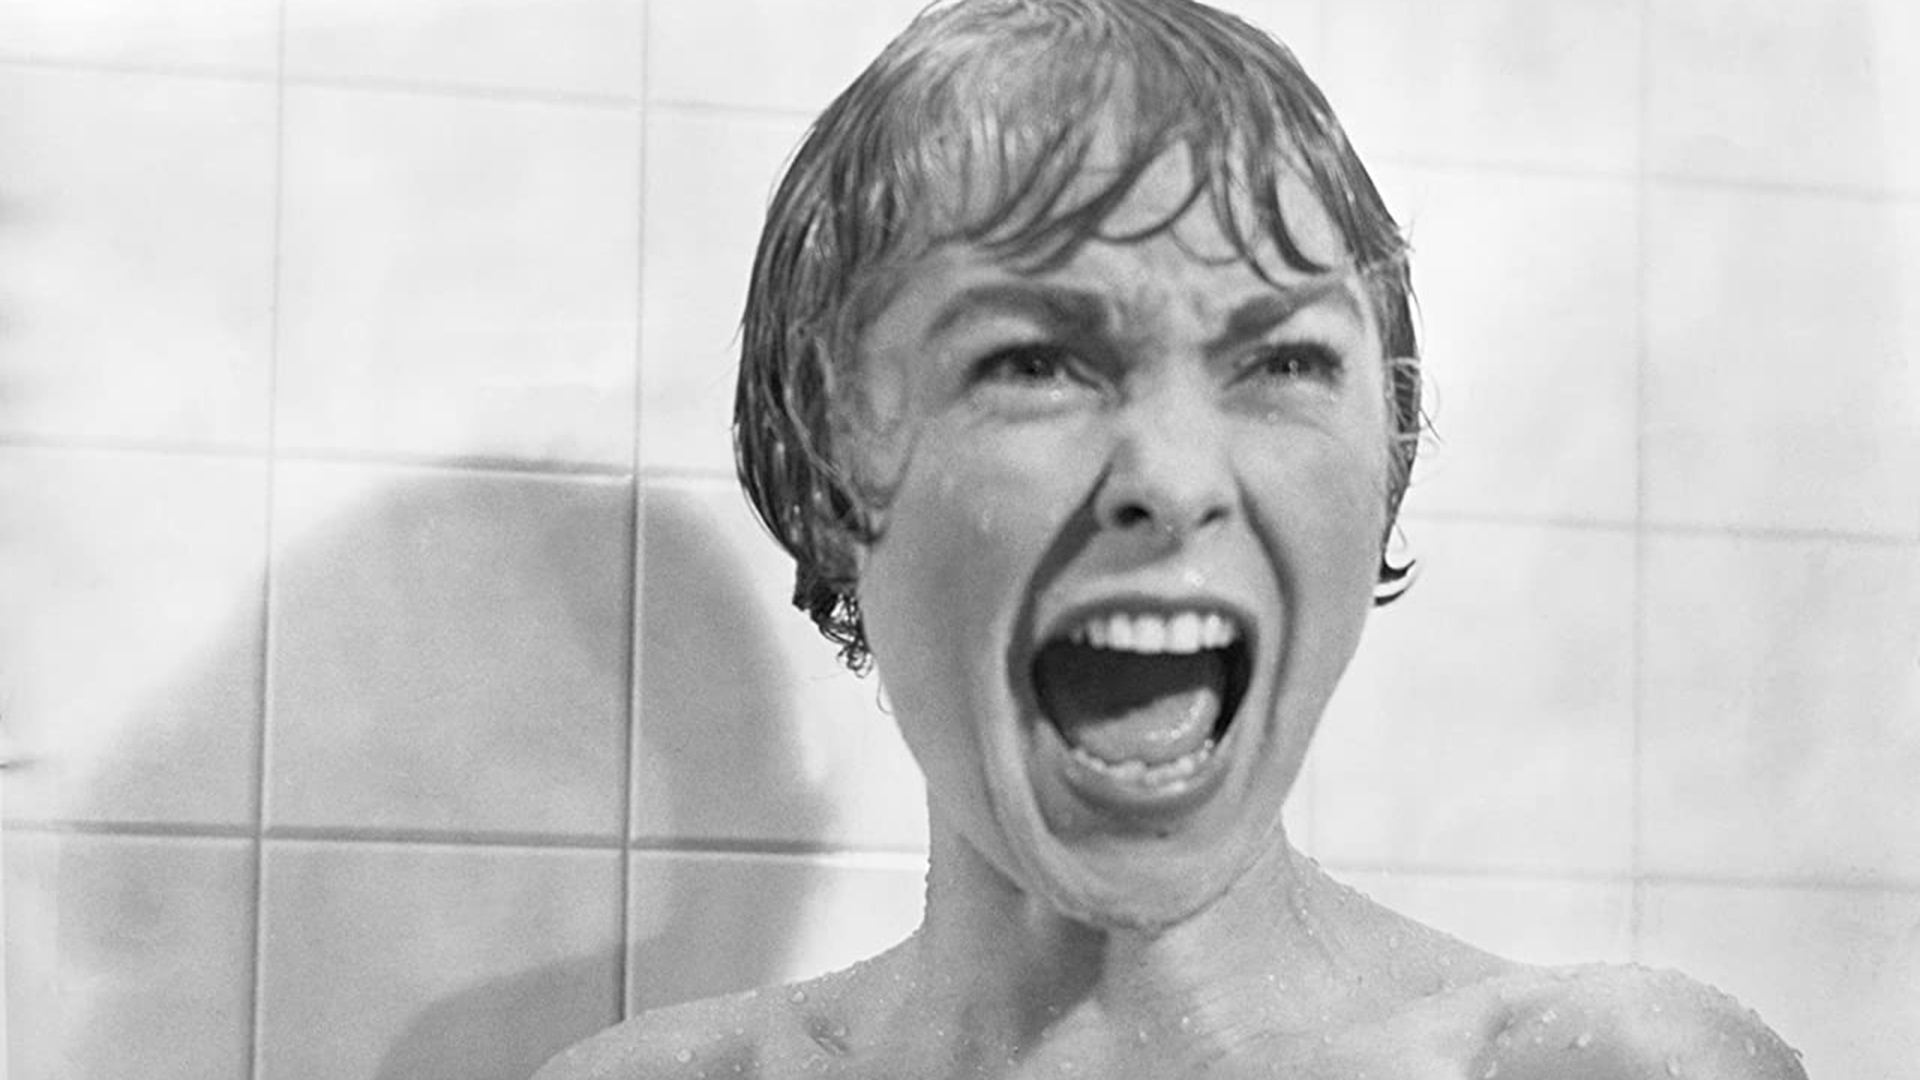 Psycho is 60 years old this year. Image: IMDB.